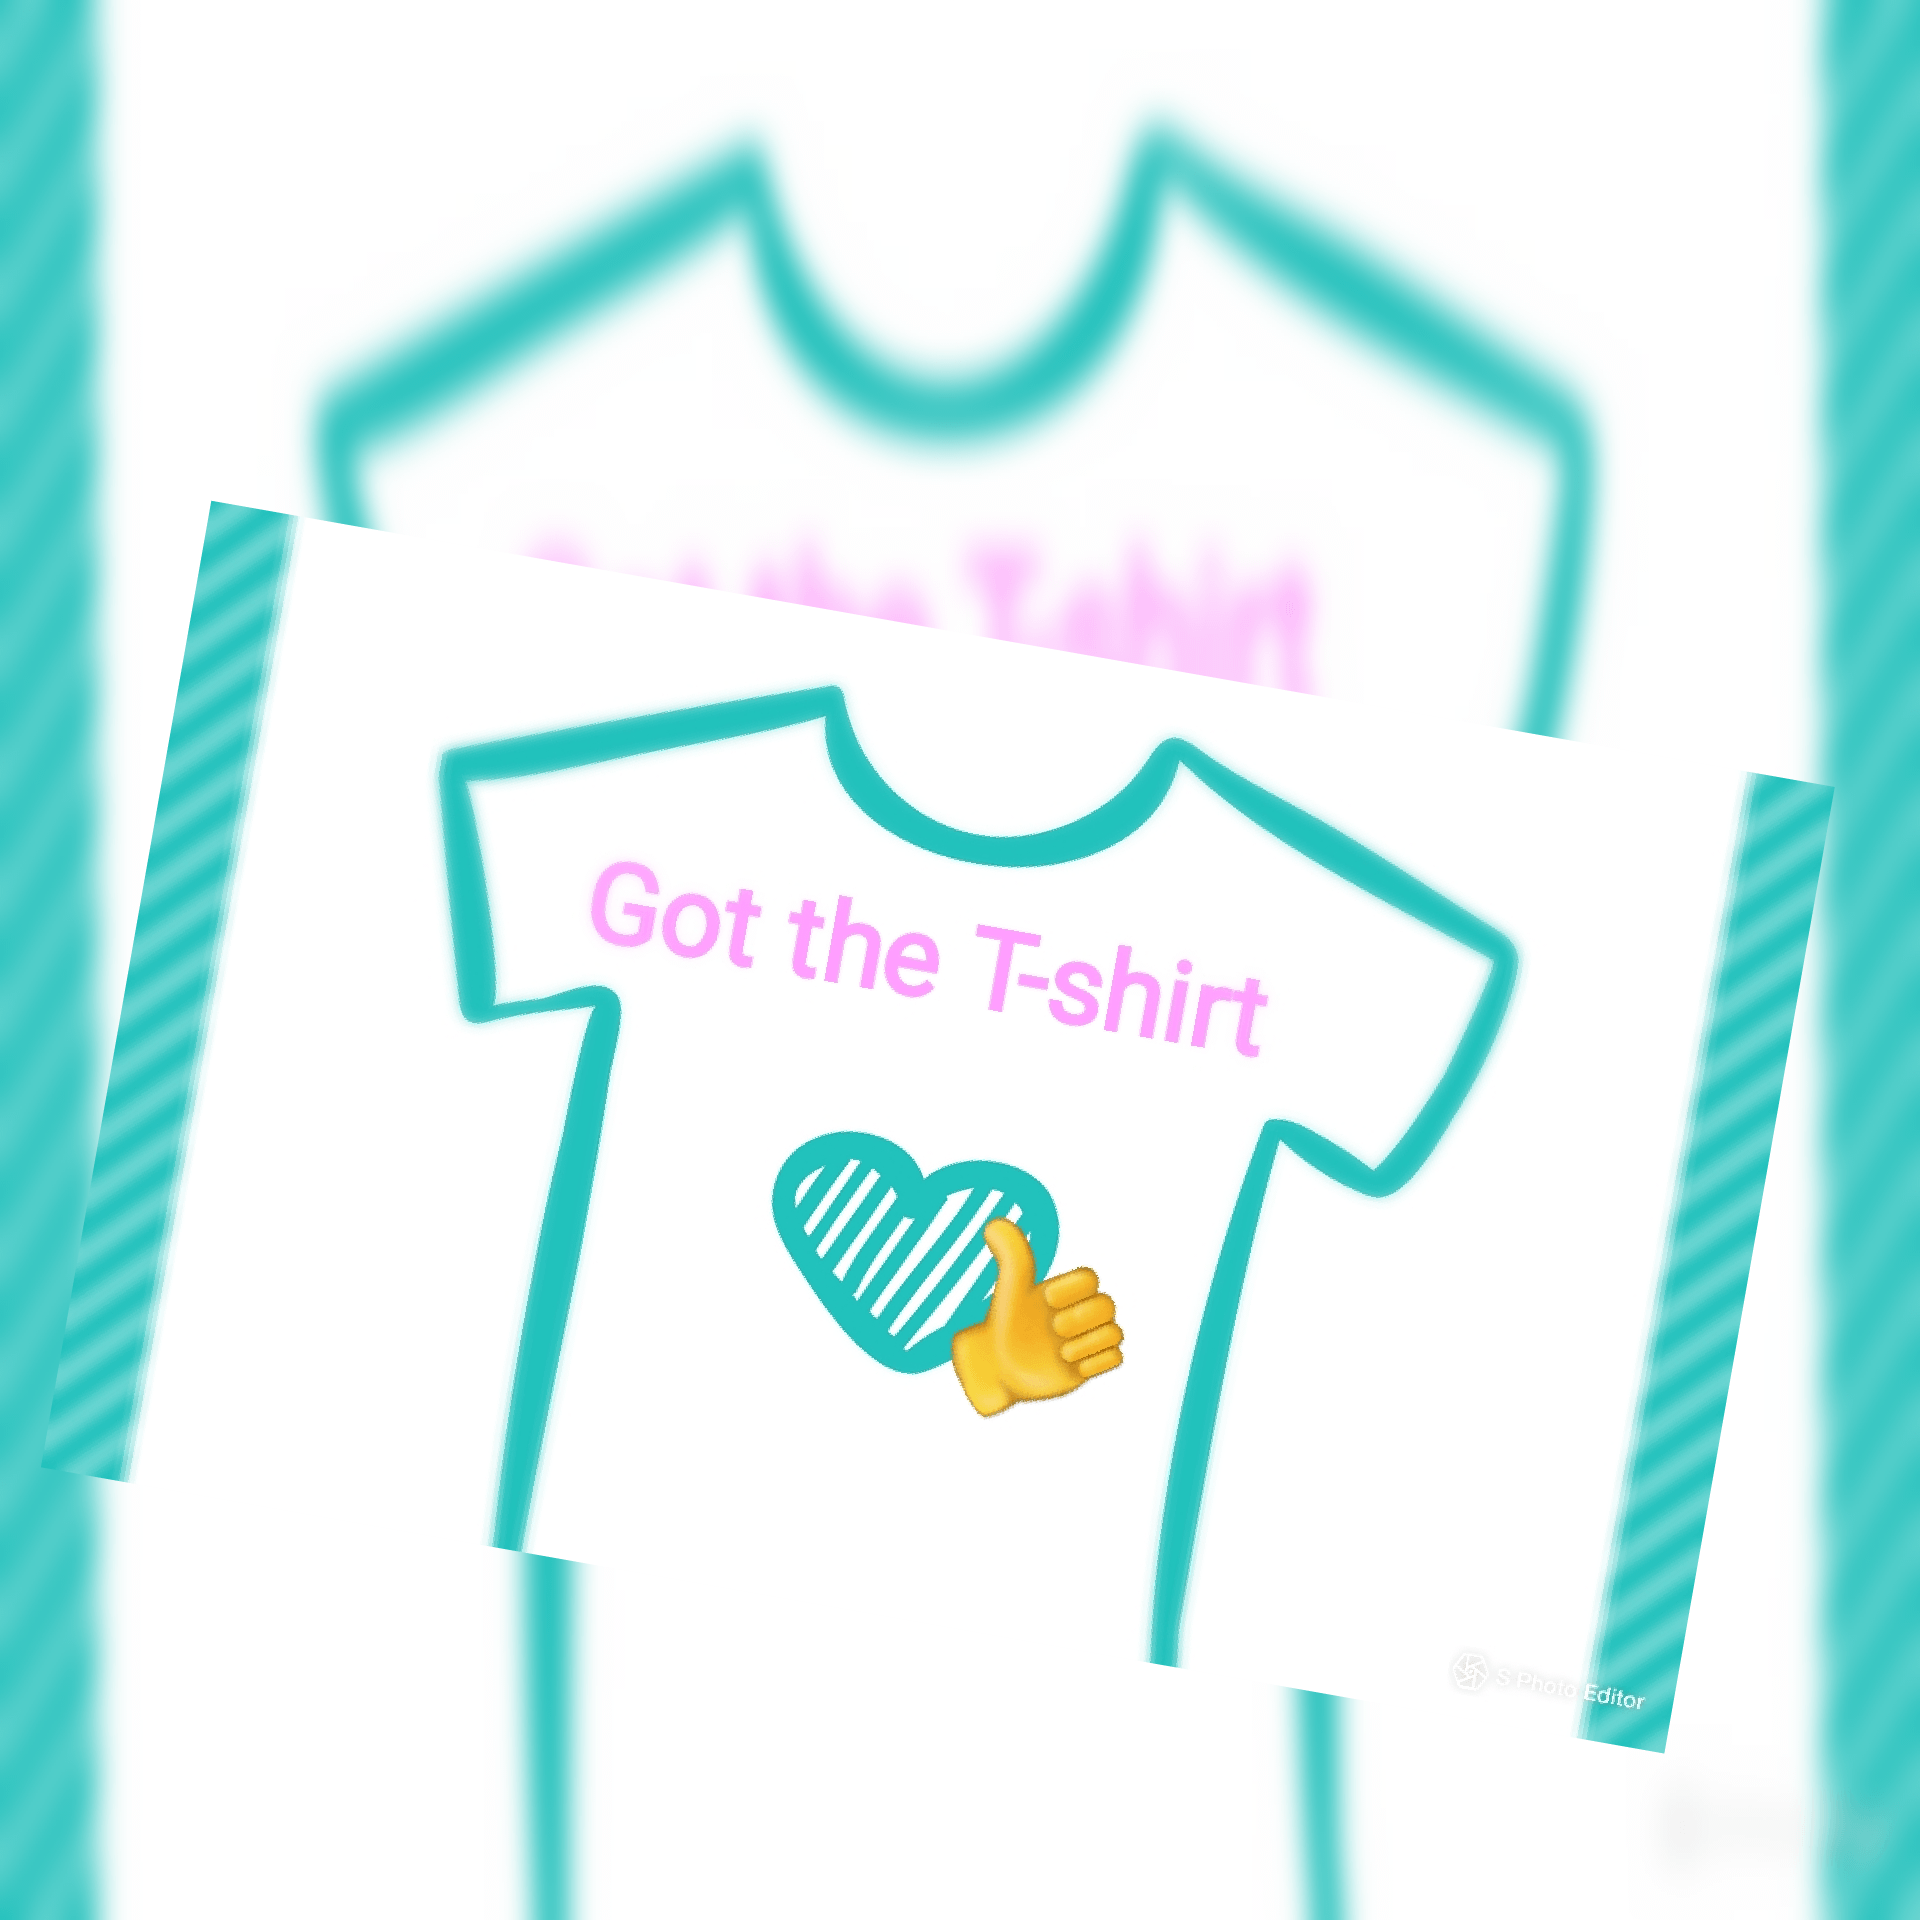 Done that - got the T-shirt